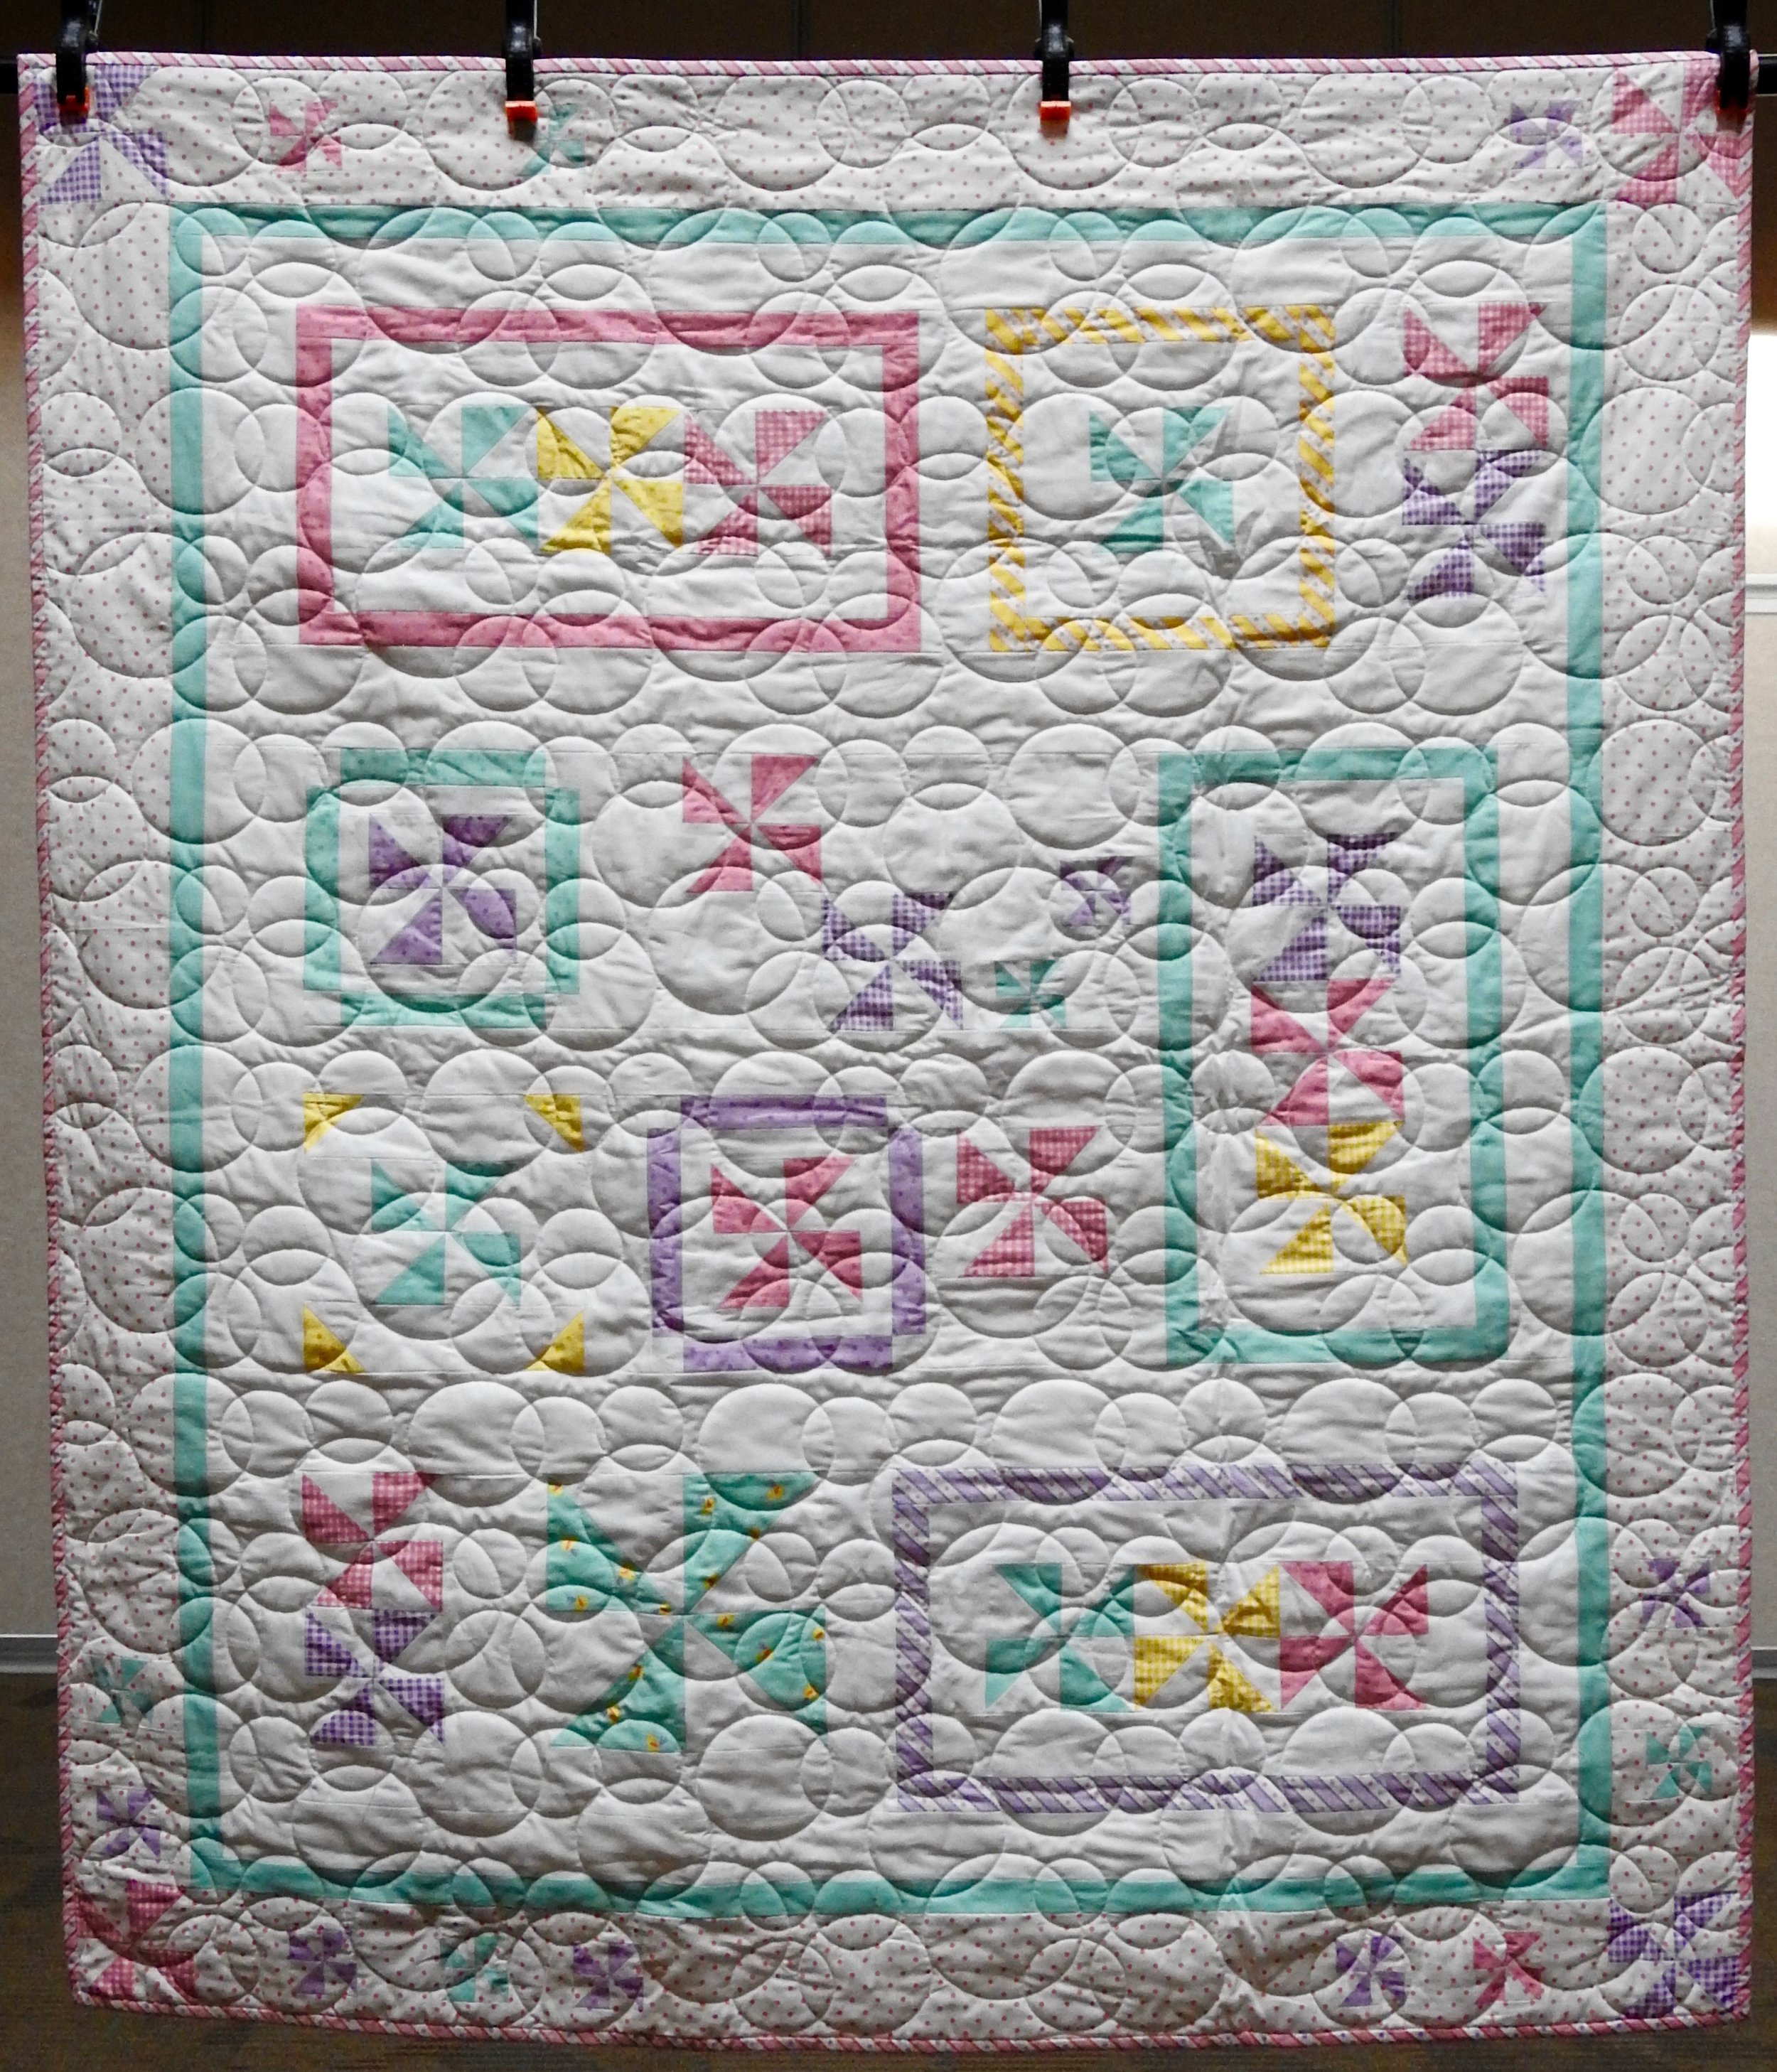 Sweet Dreams, Pieced (Bunny Hill Designs) Edge to edge Machine Quilted, donated by Andrea Elliott, 50 x 58""